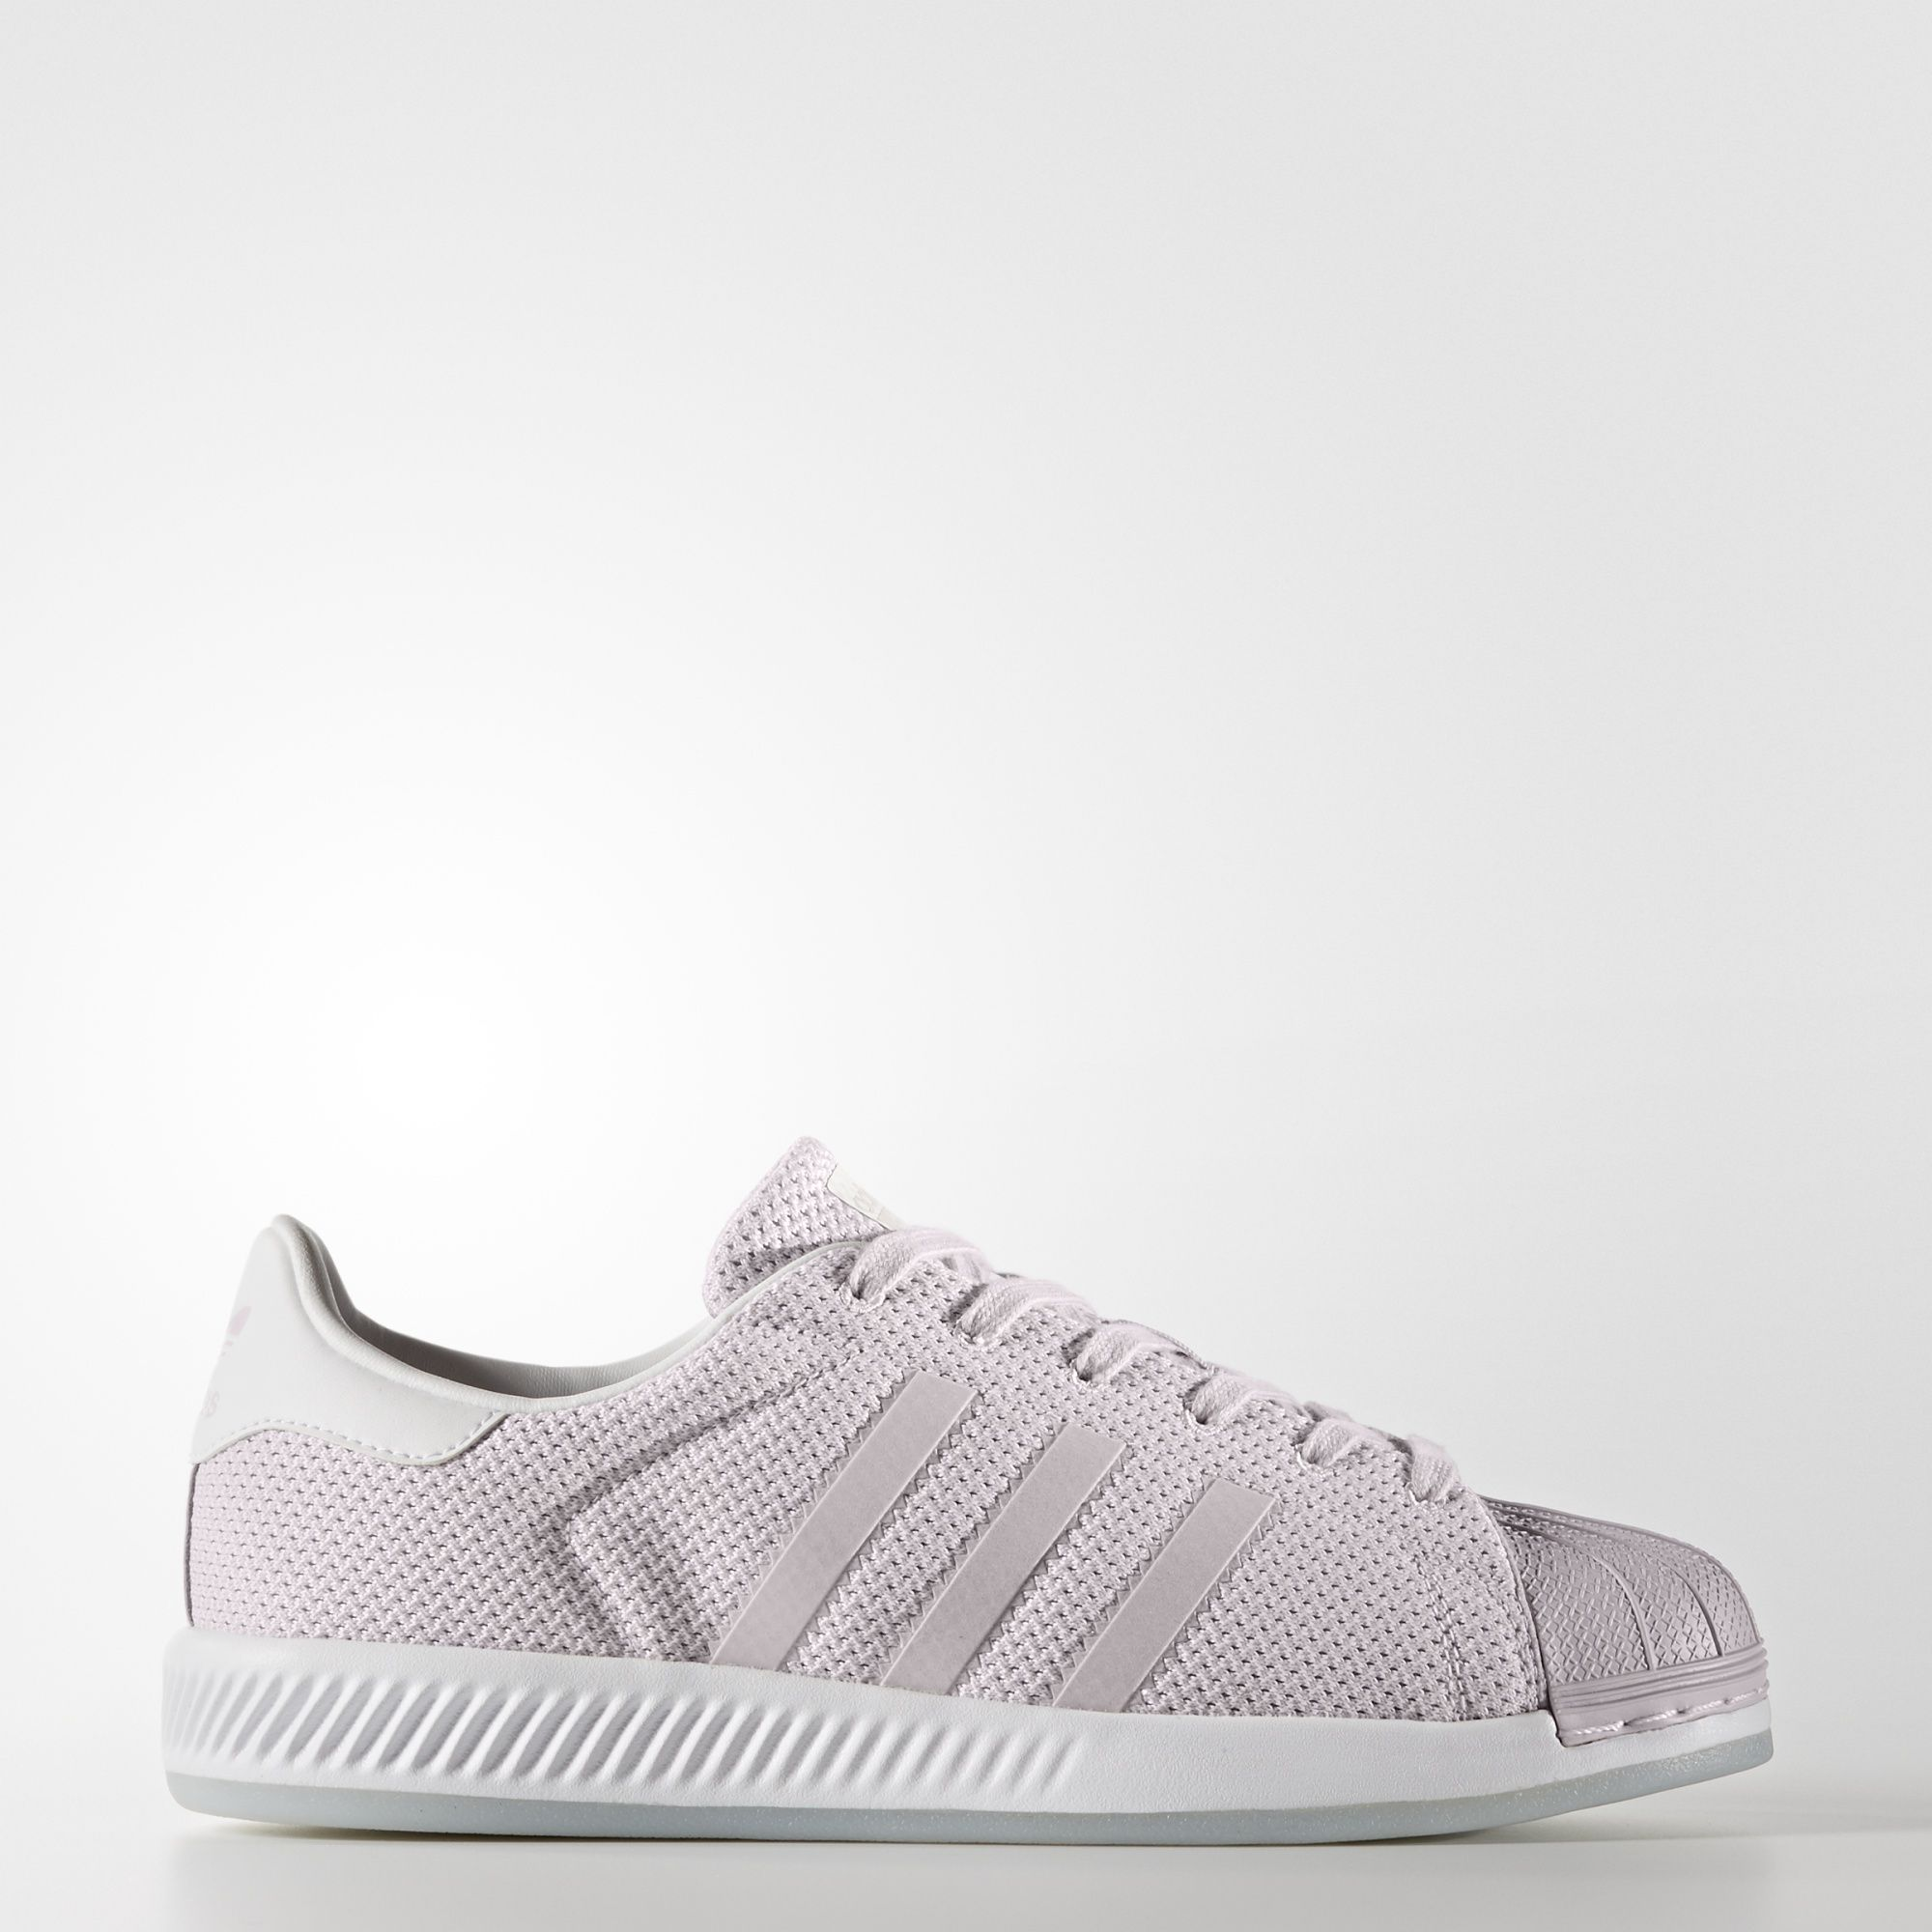 adidas Superstar Bounce Shoes - Purple  3bc2e4c162ec